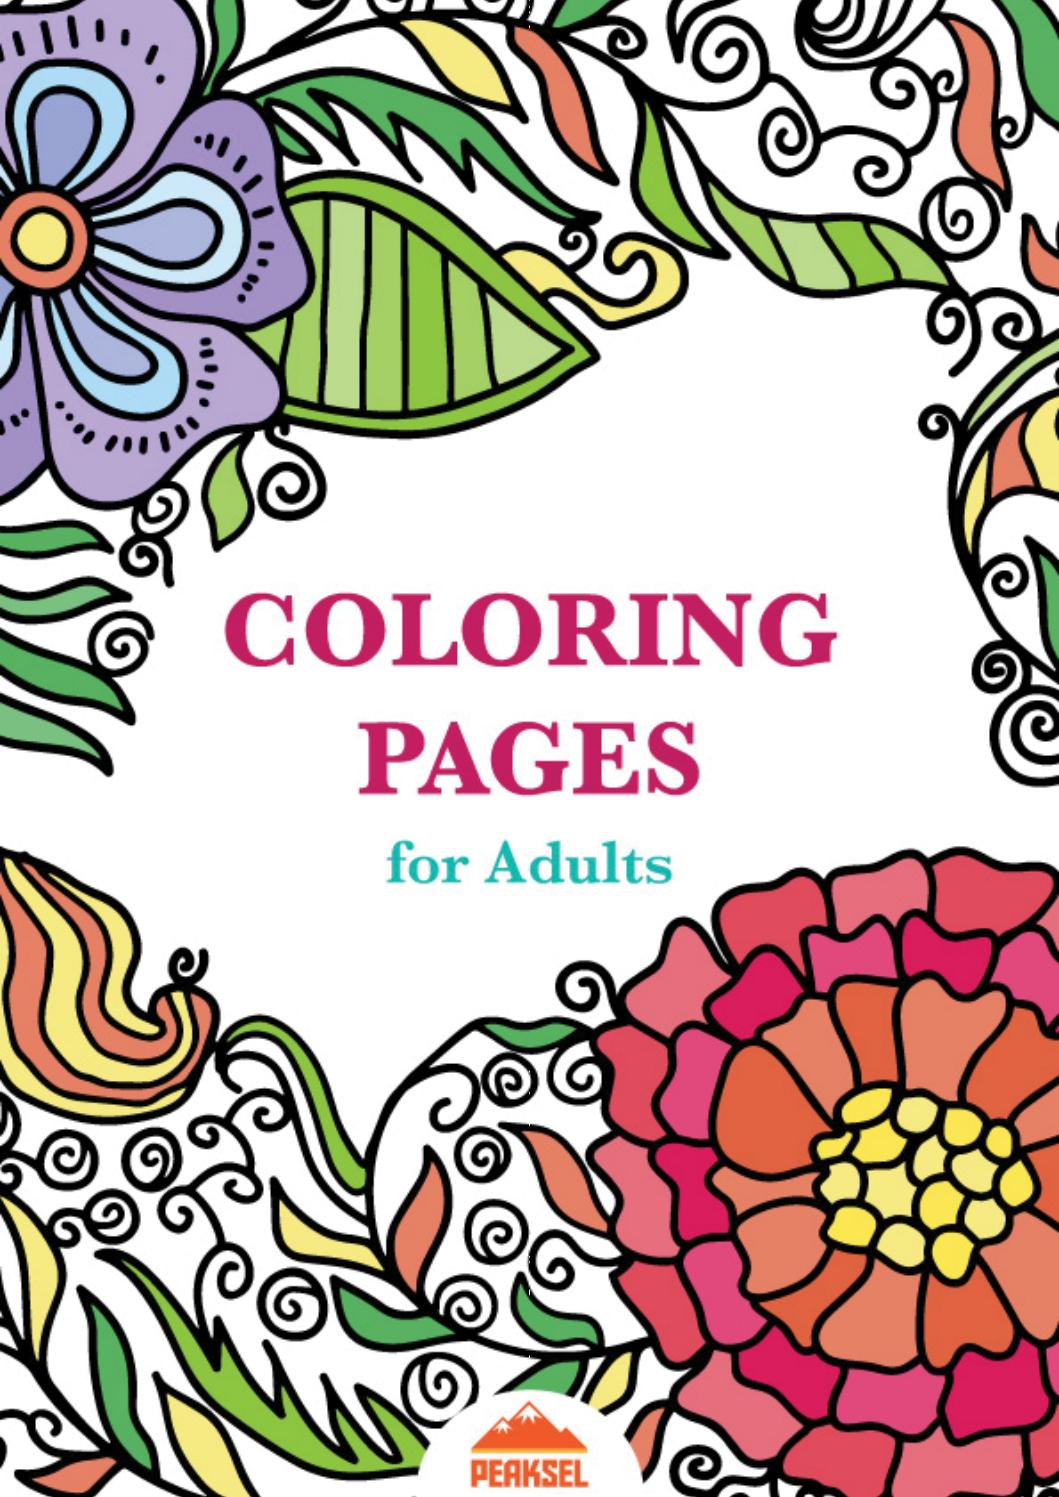 printables coloring pages for adults - photo#46